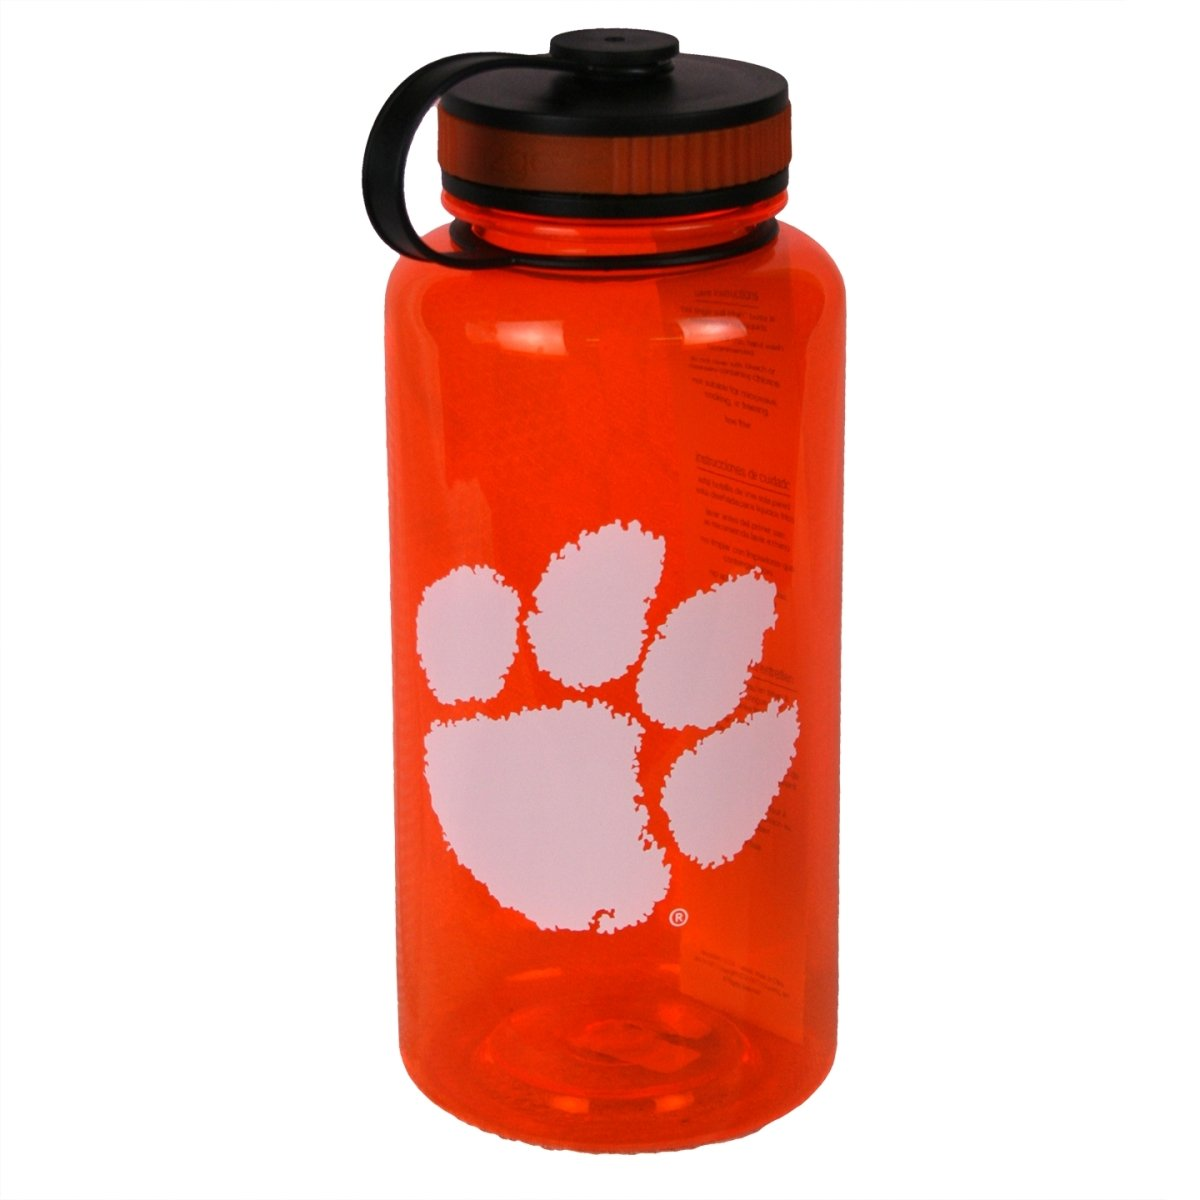 h2go 34 Oz Wide Mouth Bottle With White Paw - Mr. Knickerbocker